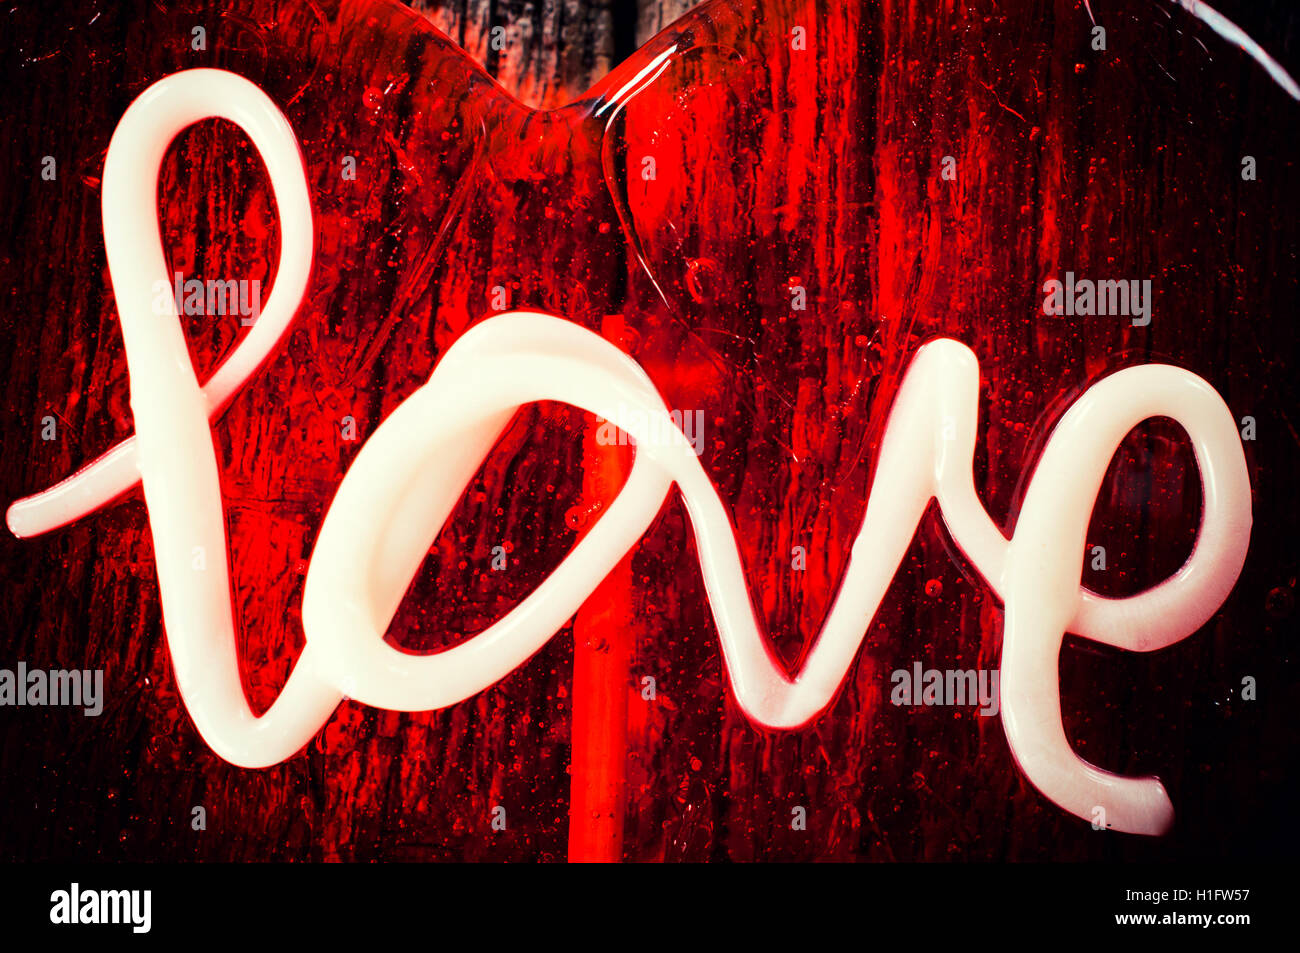 Love on red - Stock Image